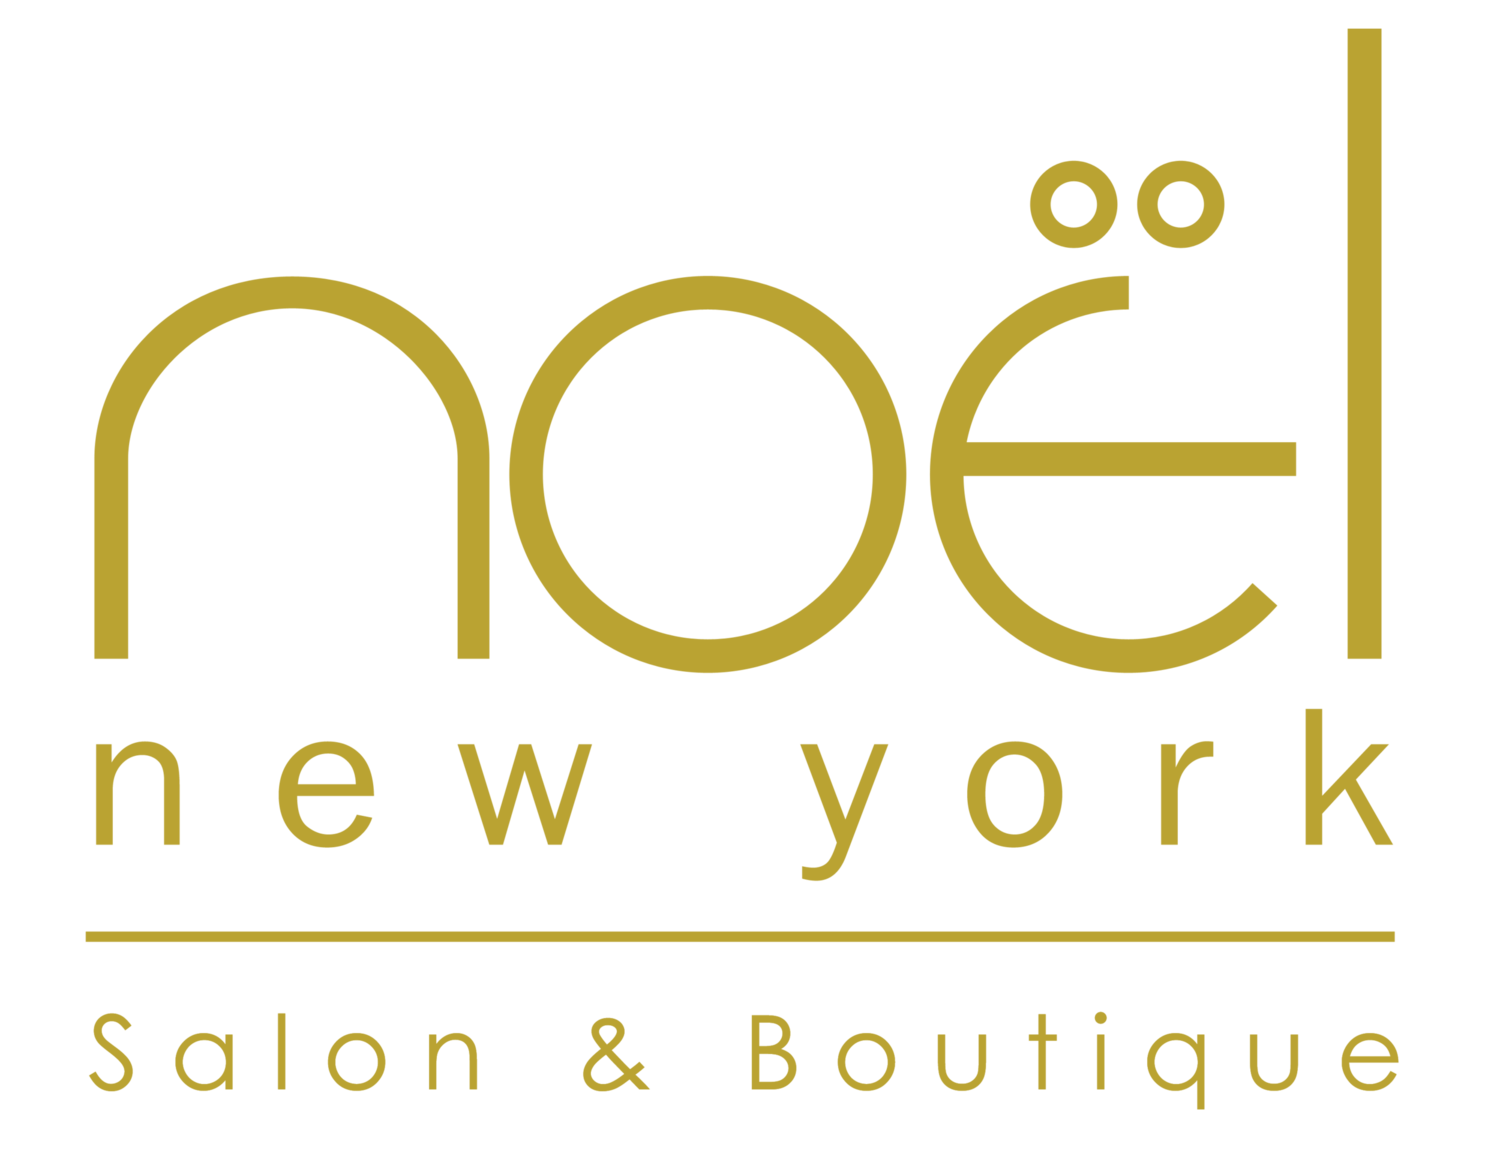 Noël New York Salon & Boutique